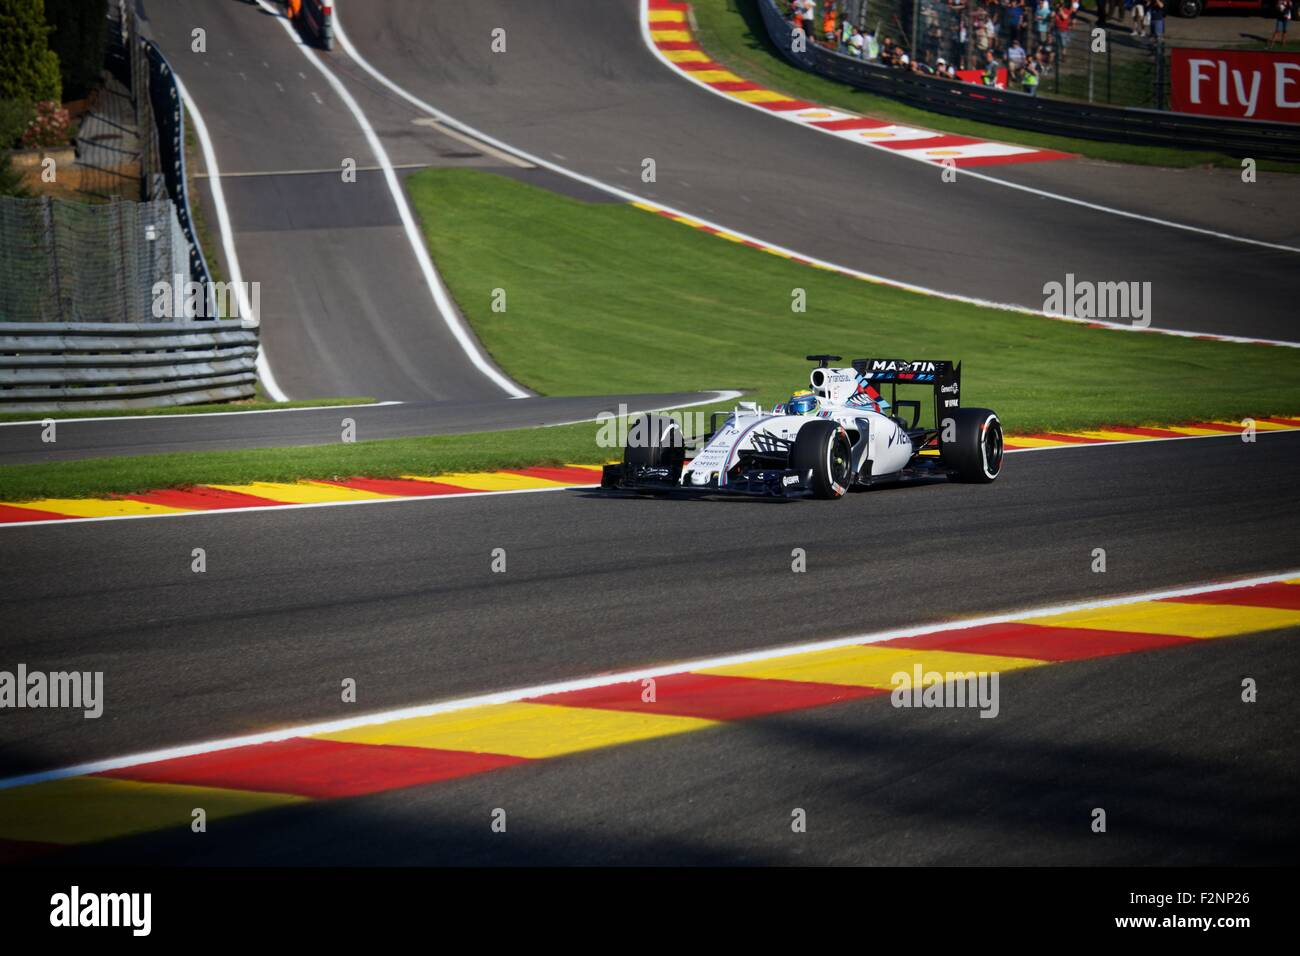 Spa Francorchamps Formula 1 2015 Season Williams Friday Practice - Stock Image